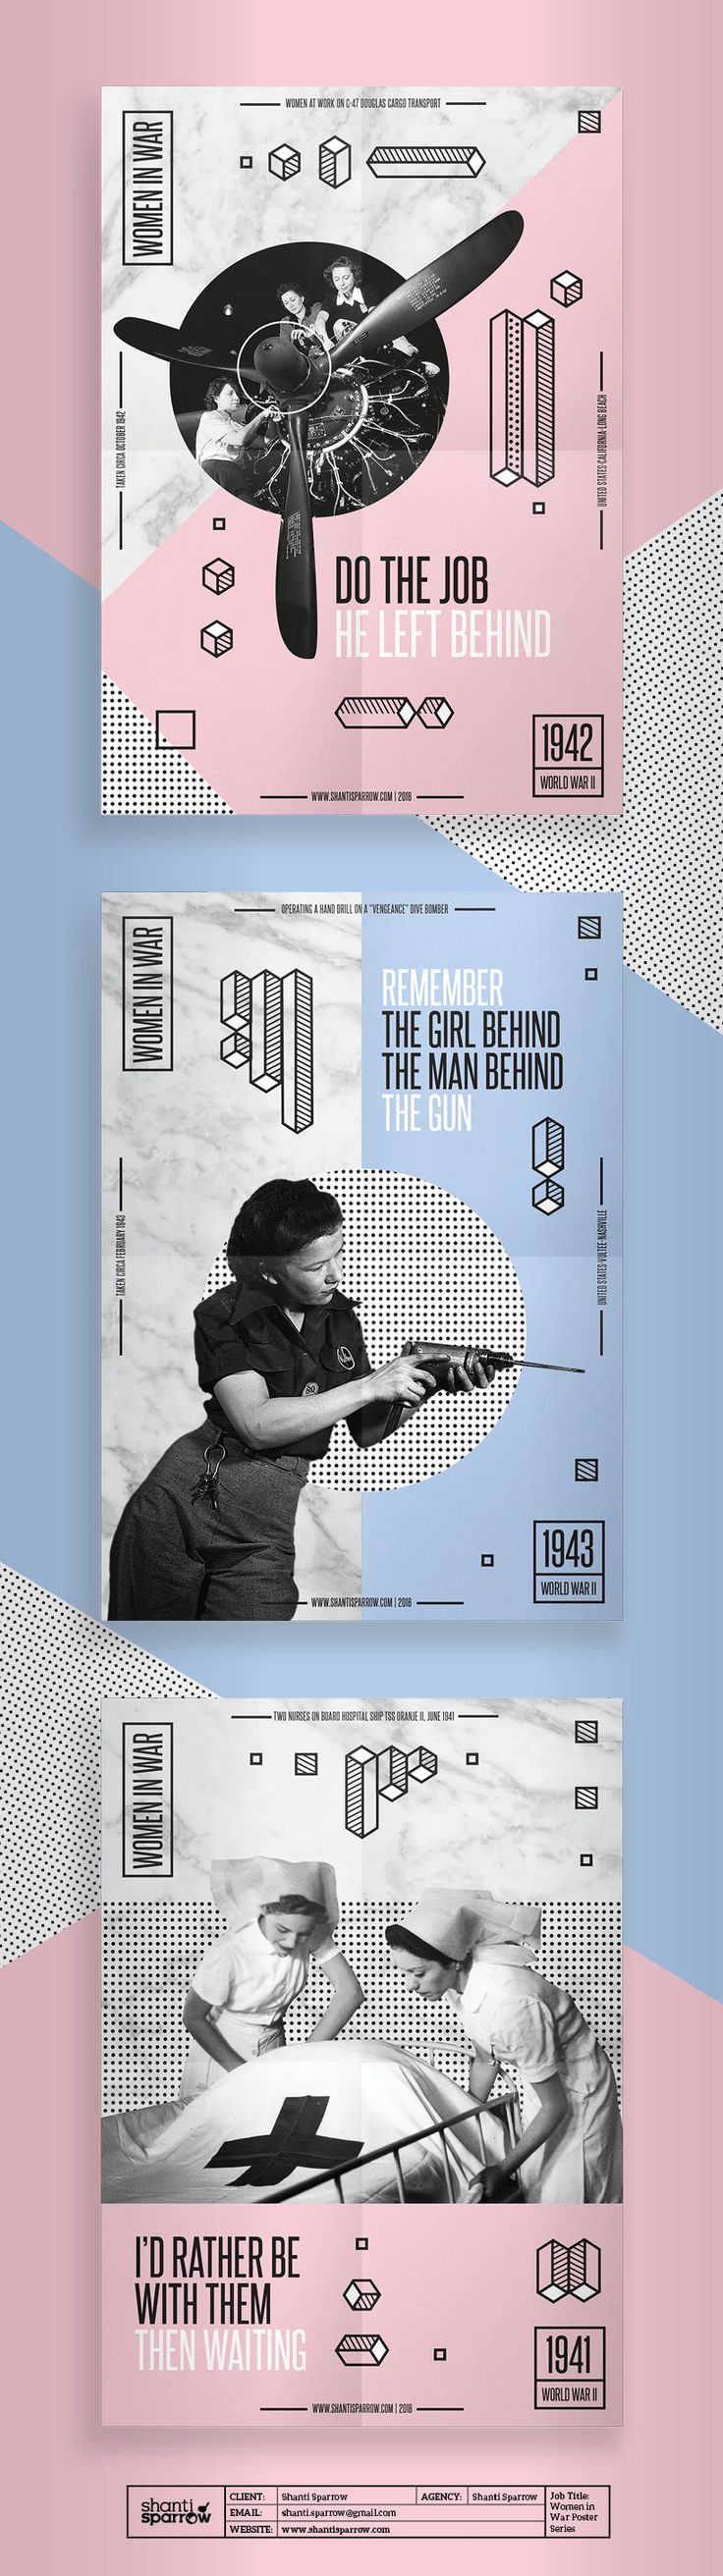 Shanti Sparrow has just been named number 27 of '33 Women Doing Amazing Things in Graphic Design'. Shanti's engaging posters and brochures caught the eye of Canva and she's made the li… | https://lomejordelaweb.es/